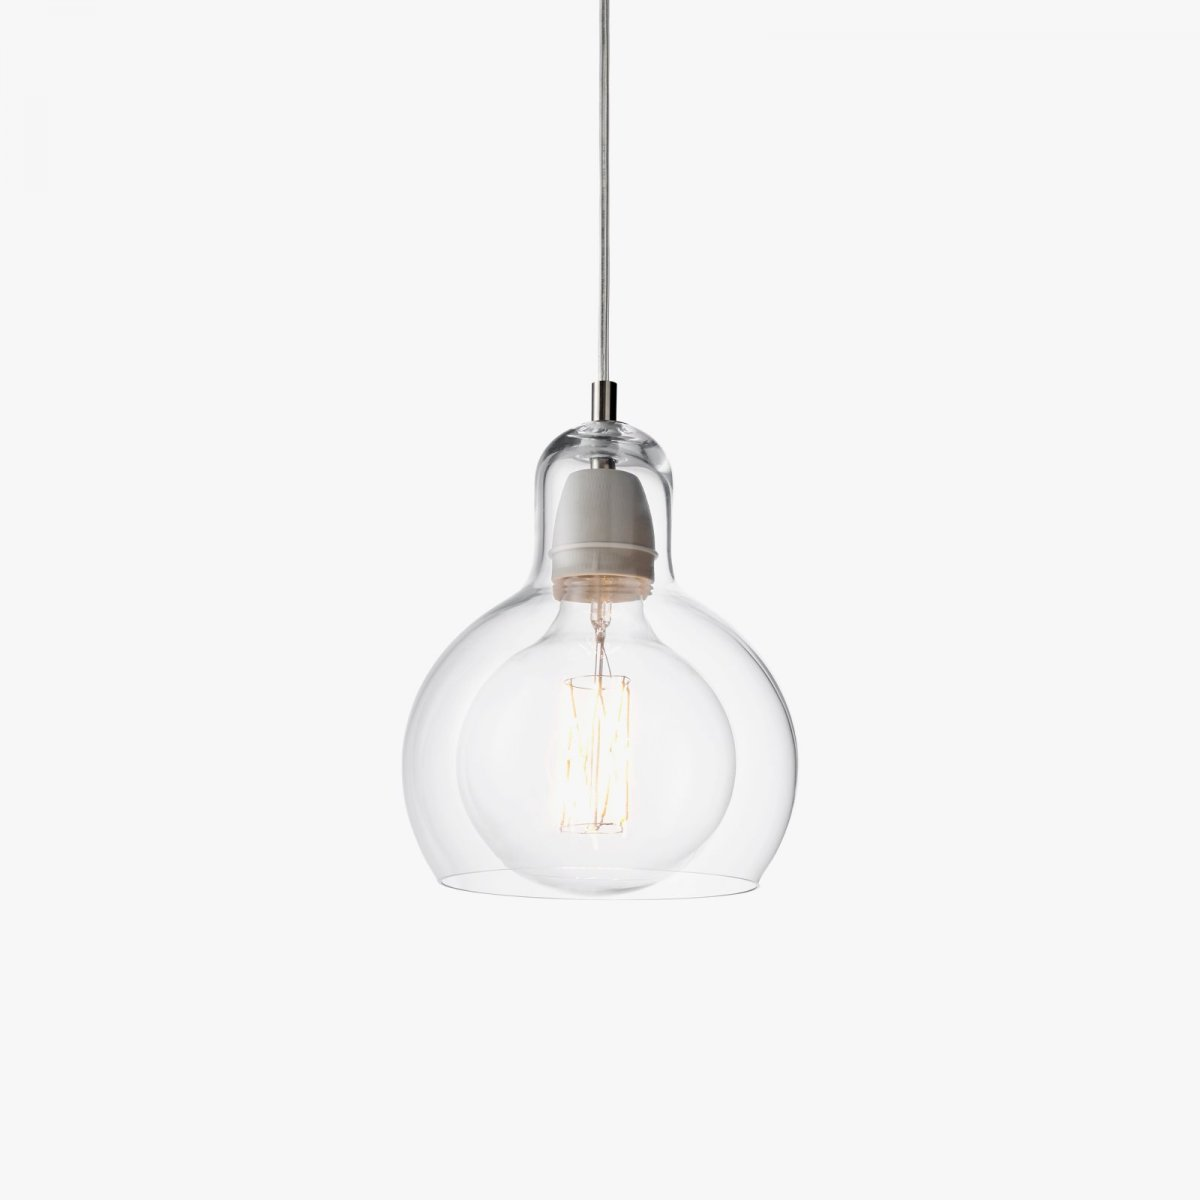 Mega Bulb SR2, clear glass with clear PVC cord.